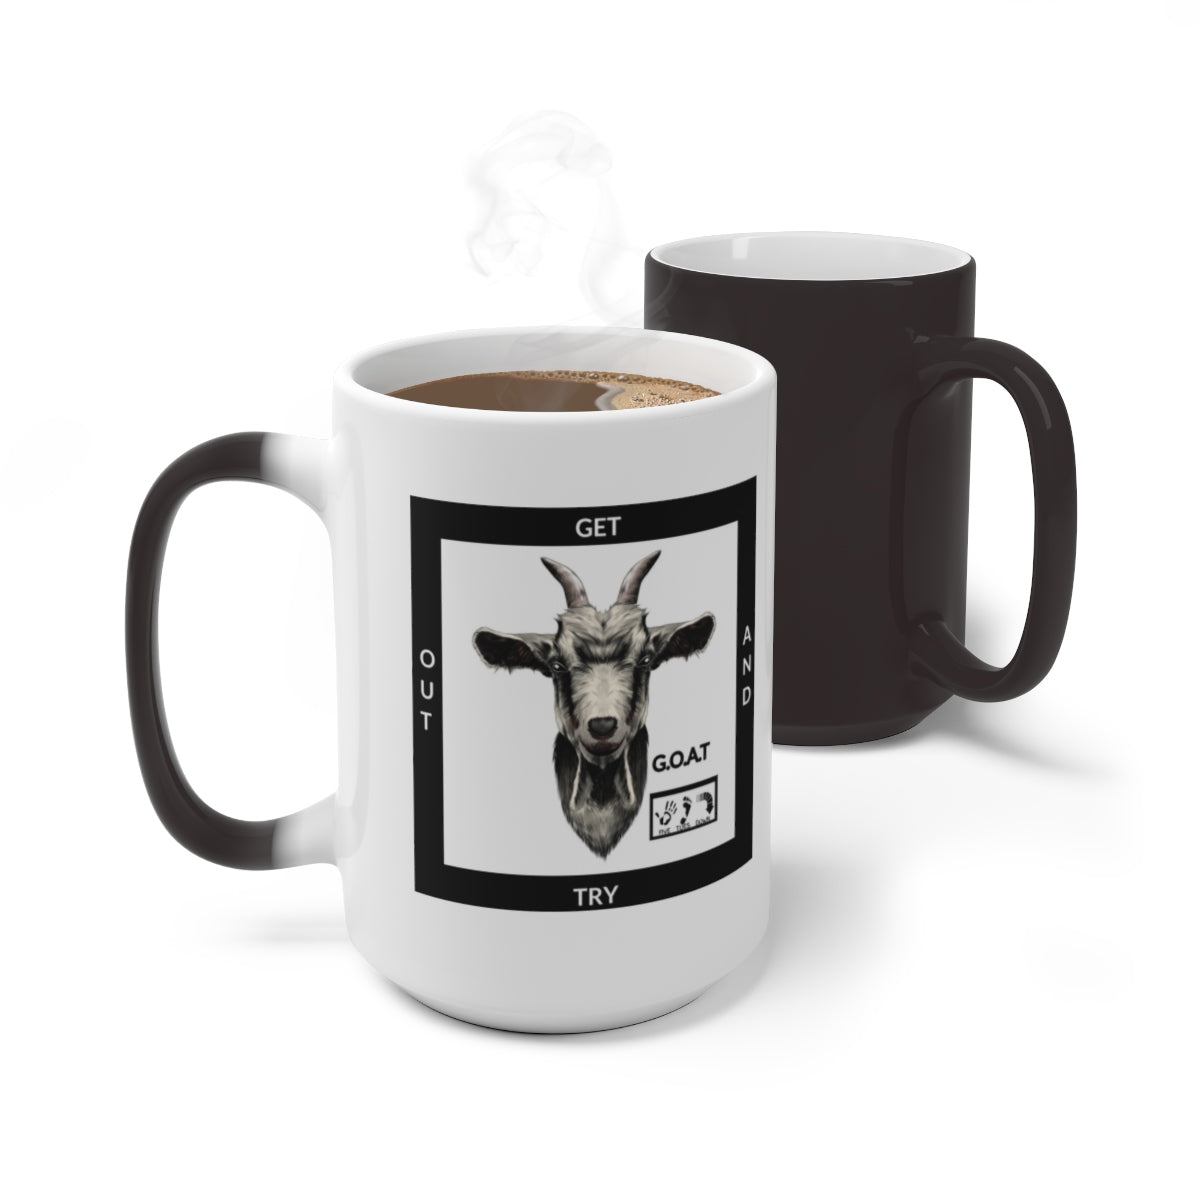 Five Toes Down G.O.A.T x2 Color Changing Mug